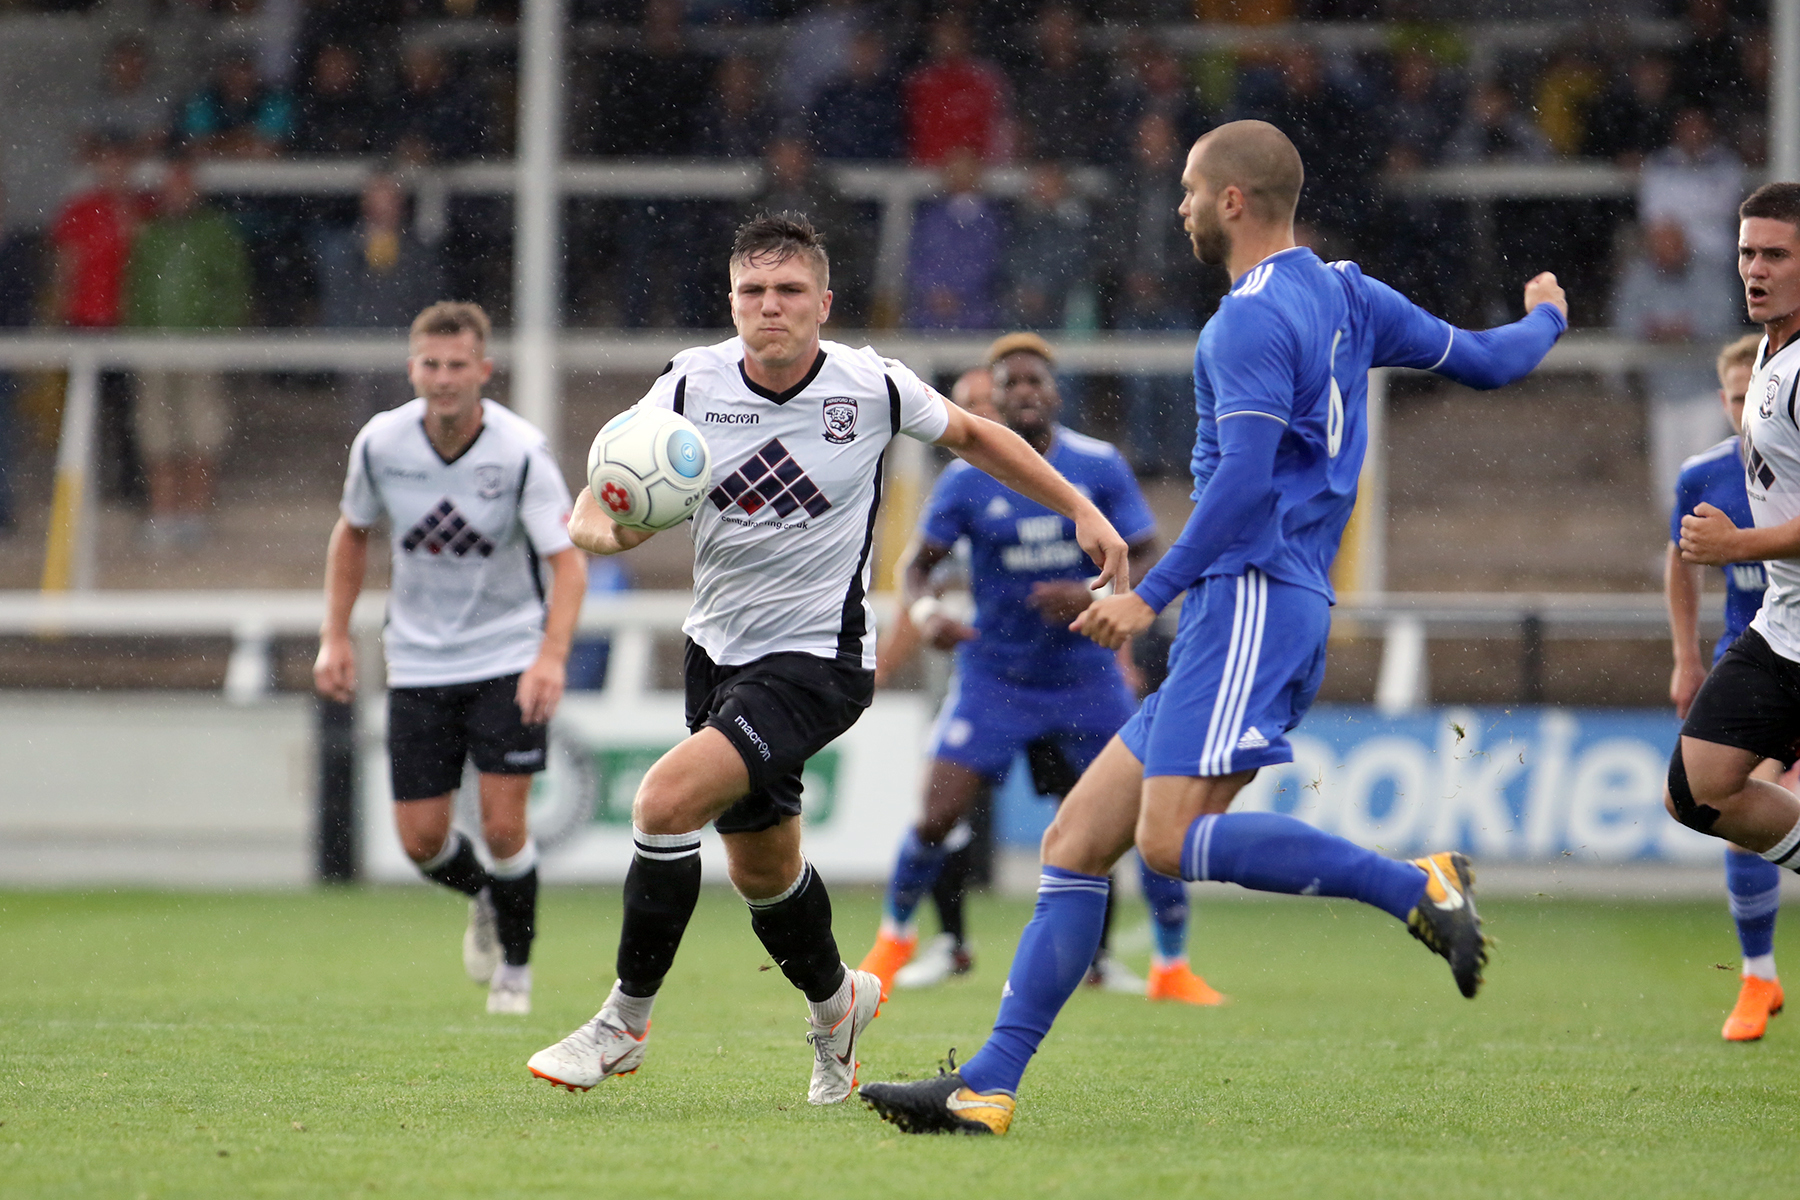 Harry White (pictured against Cardiff City) Picture: Stephen Niblett/Hereford FC